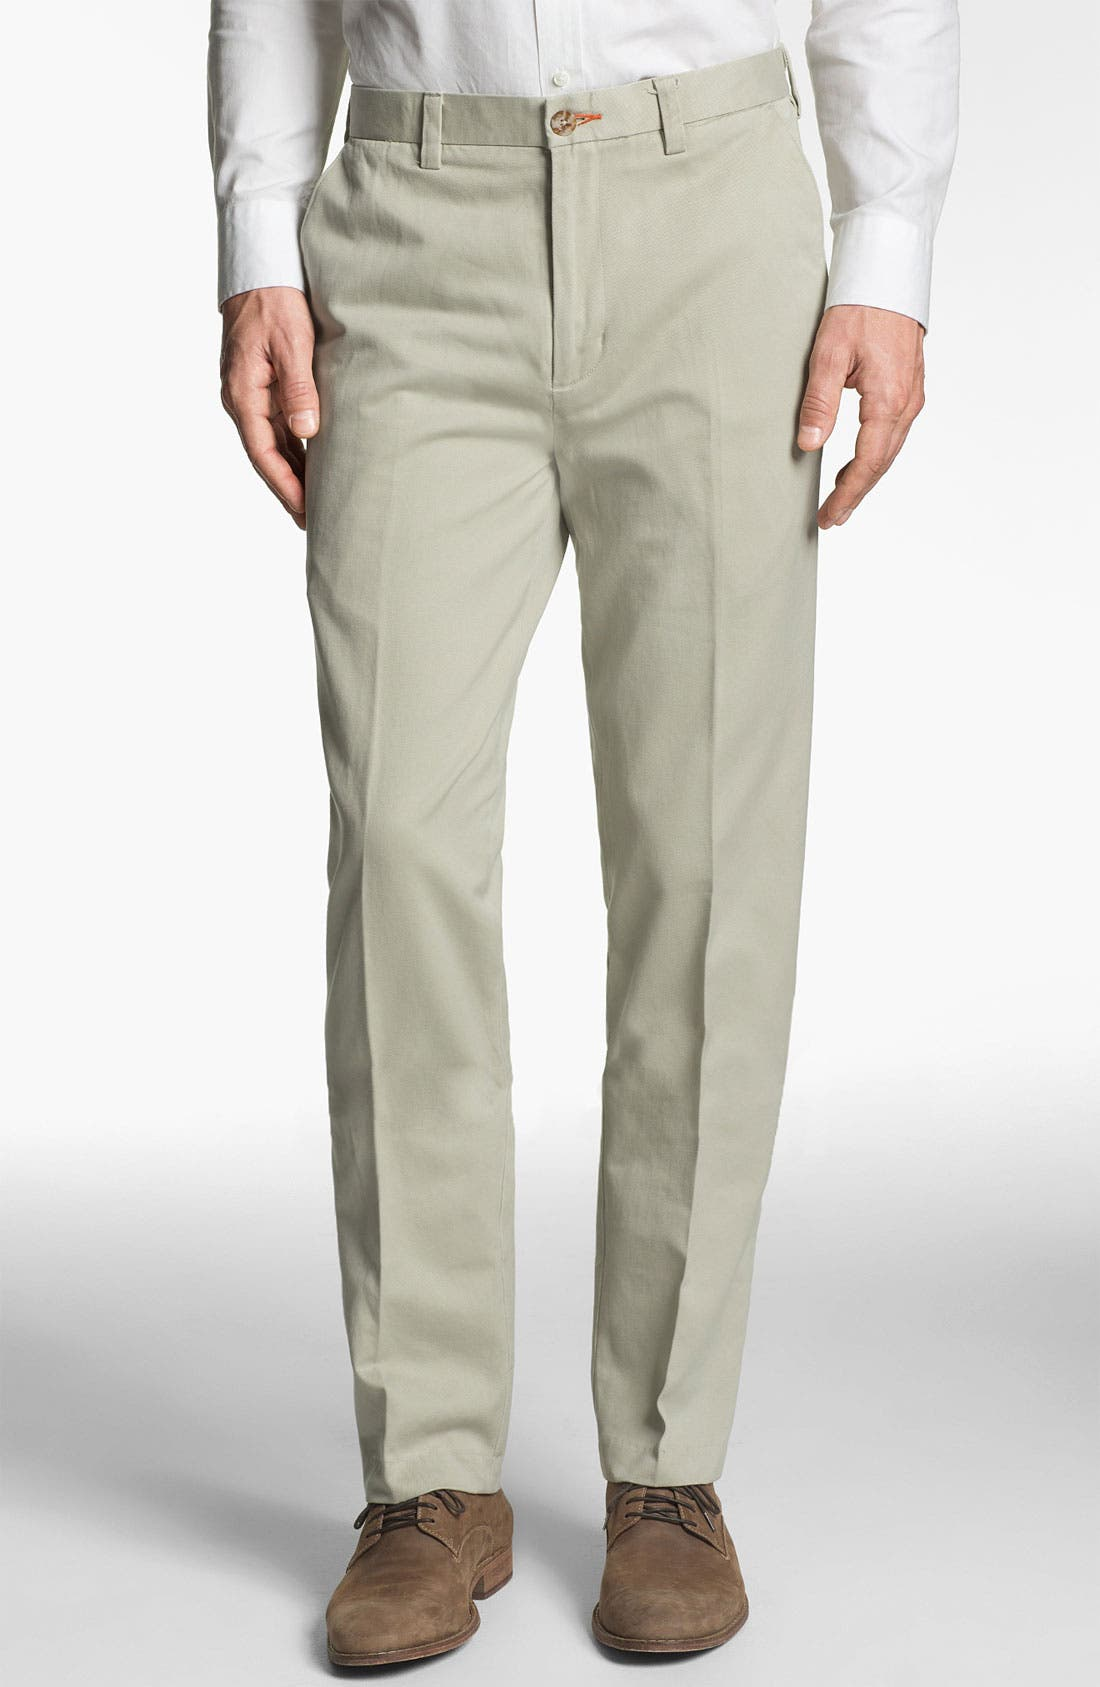 Main Image - ROAD 'Lux' Flat Front Twill Trousers